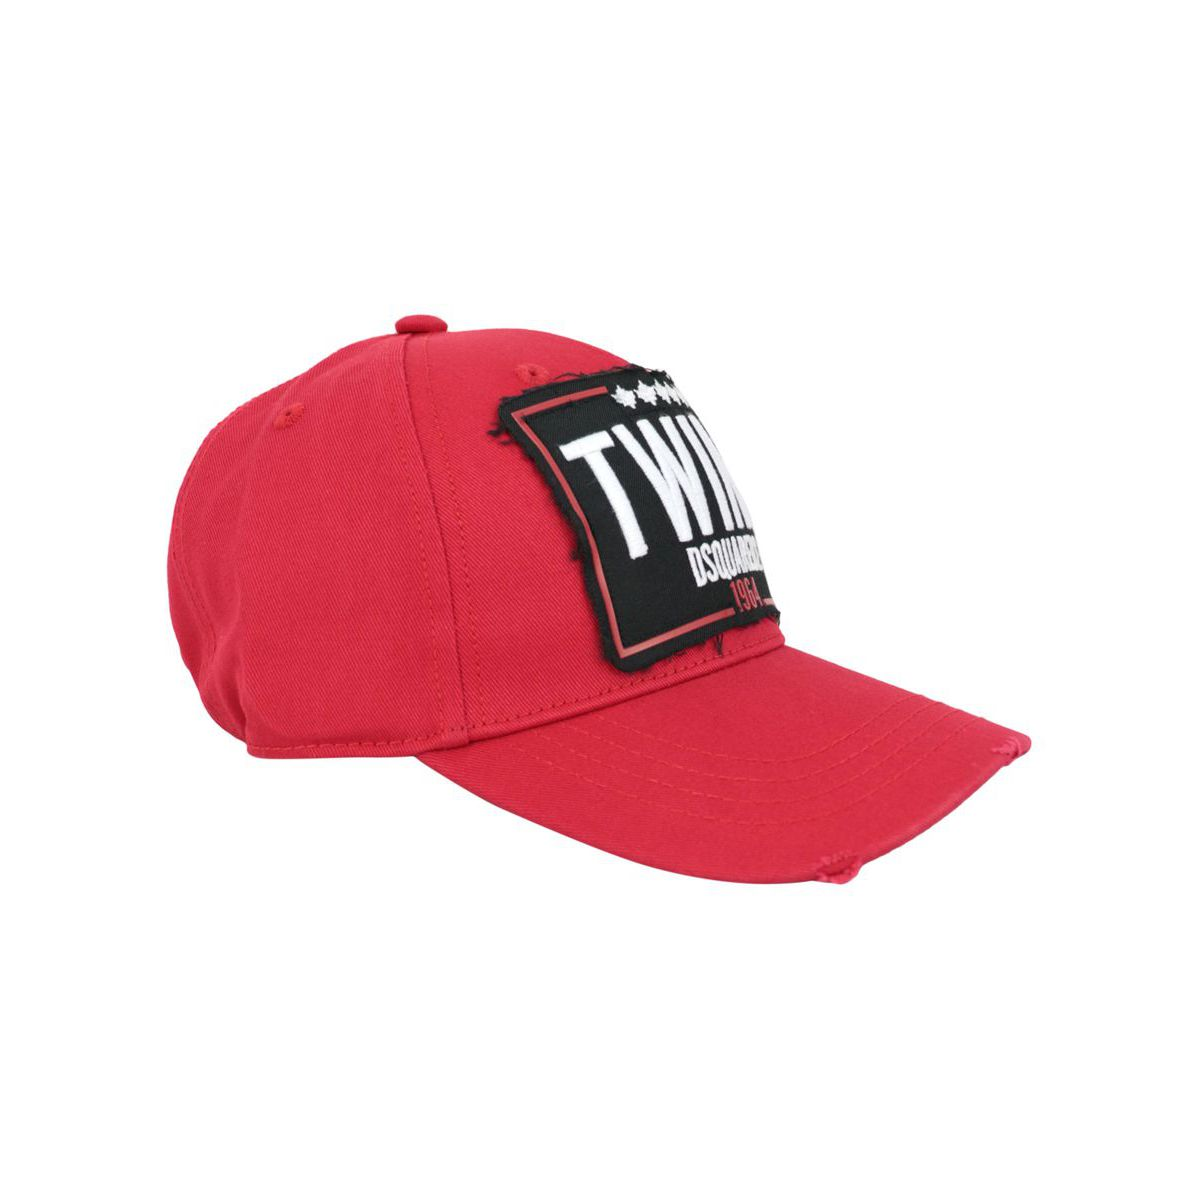 Baseball hat with contrasting logo patch Red Dsquared2